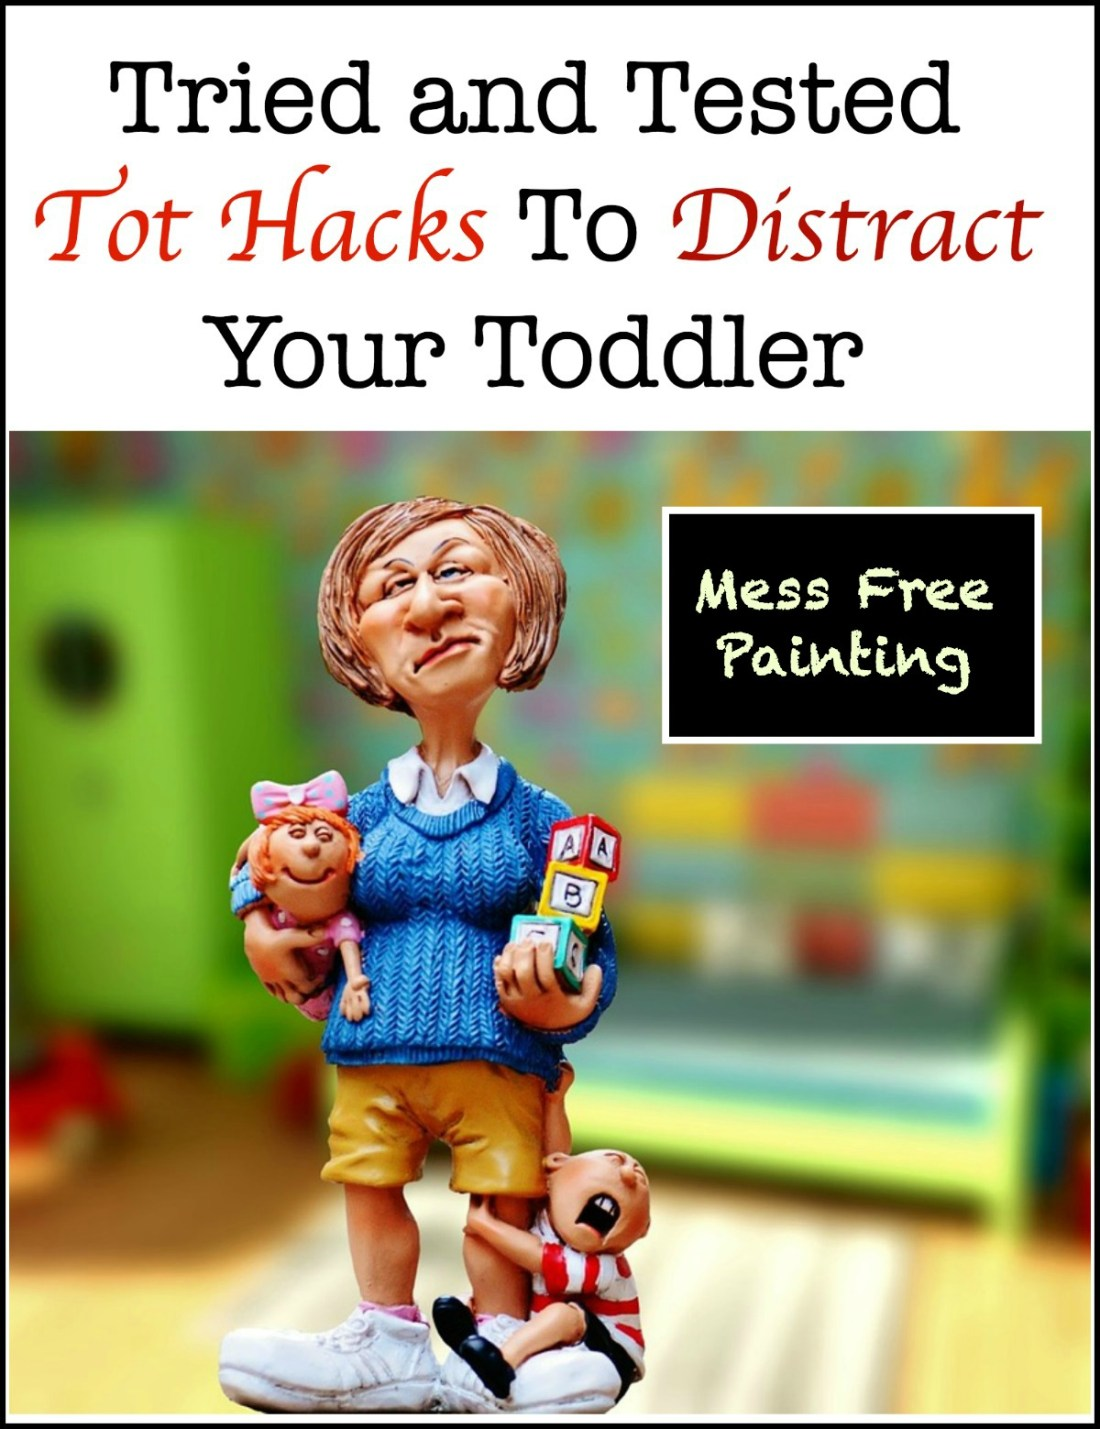 mess free painting for kids tried and tested tot hacks water painting dry blackboards